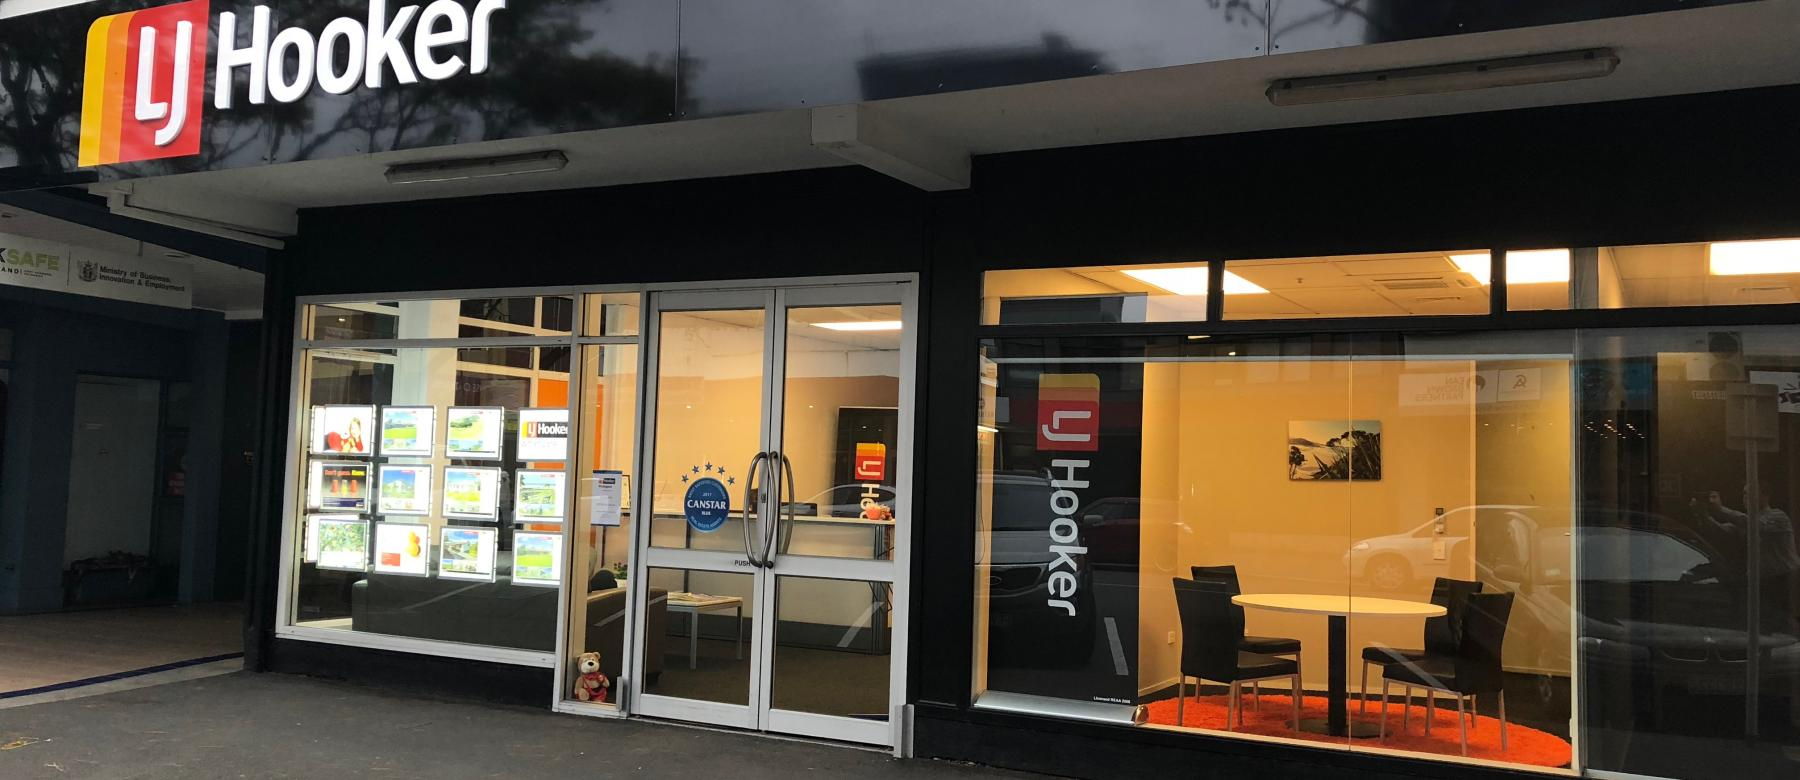 Whangarei LJHooker Office 25 Rathbone St